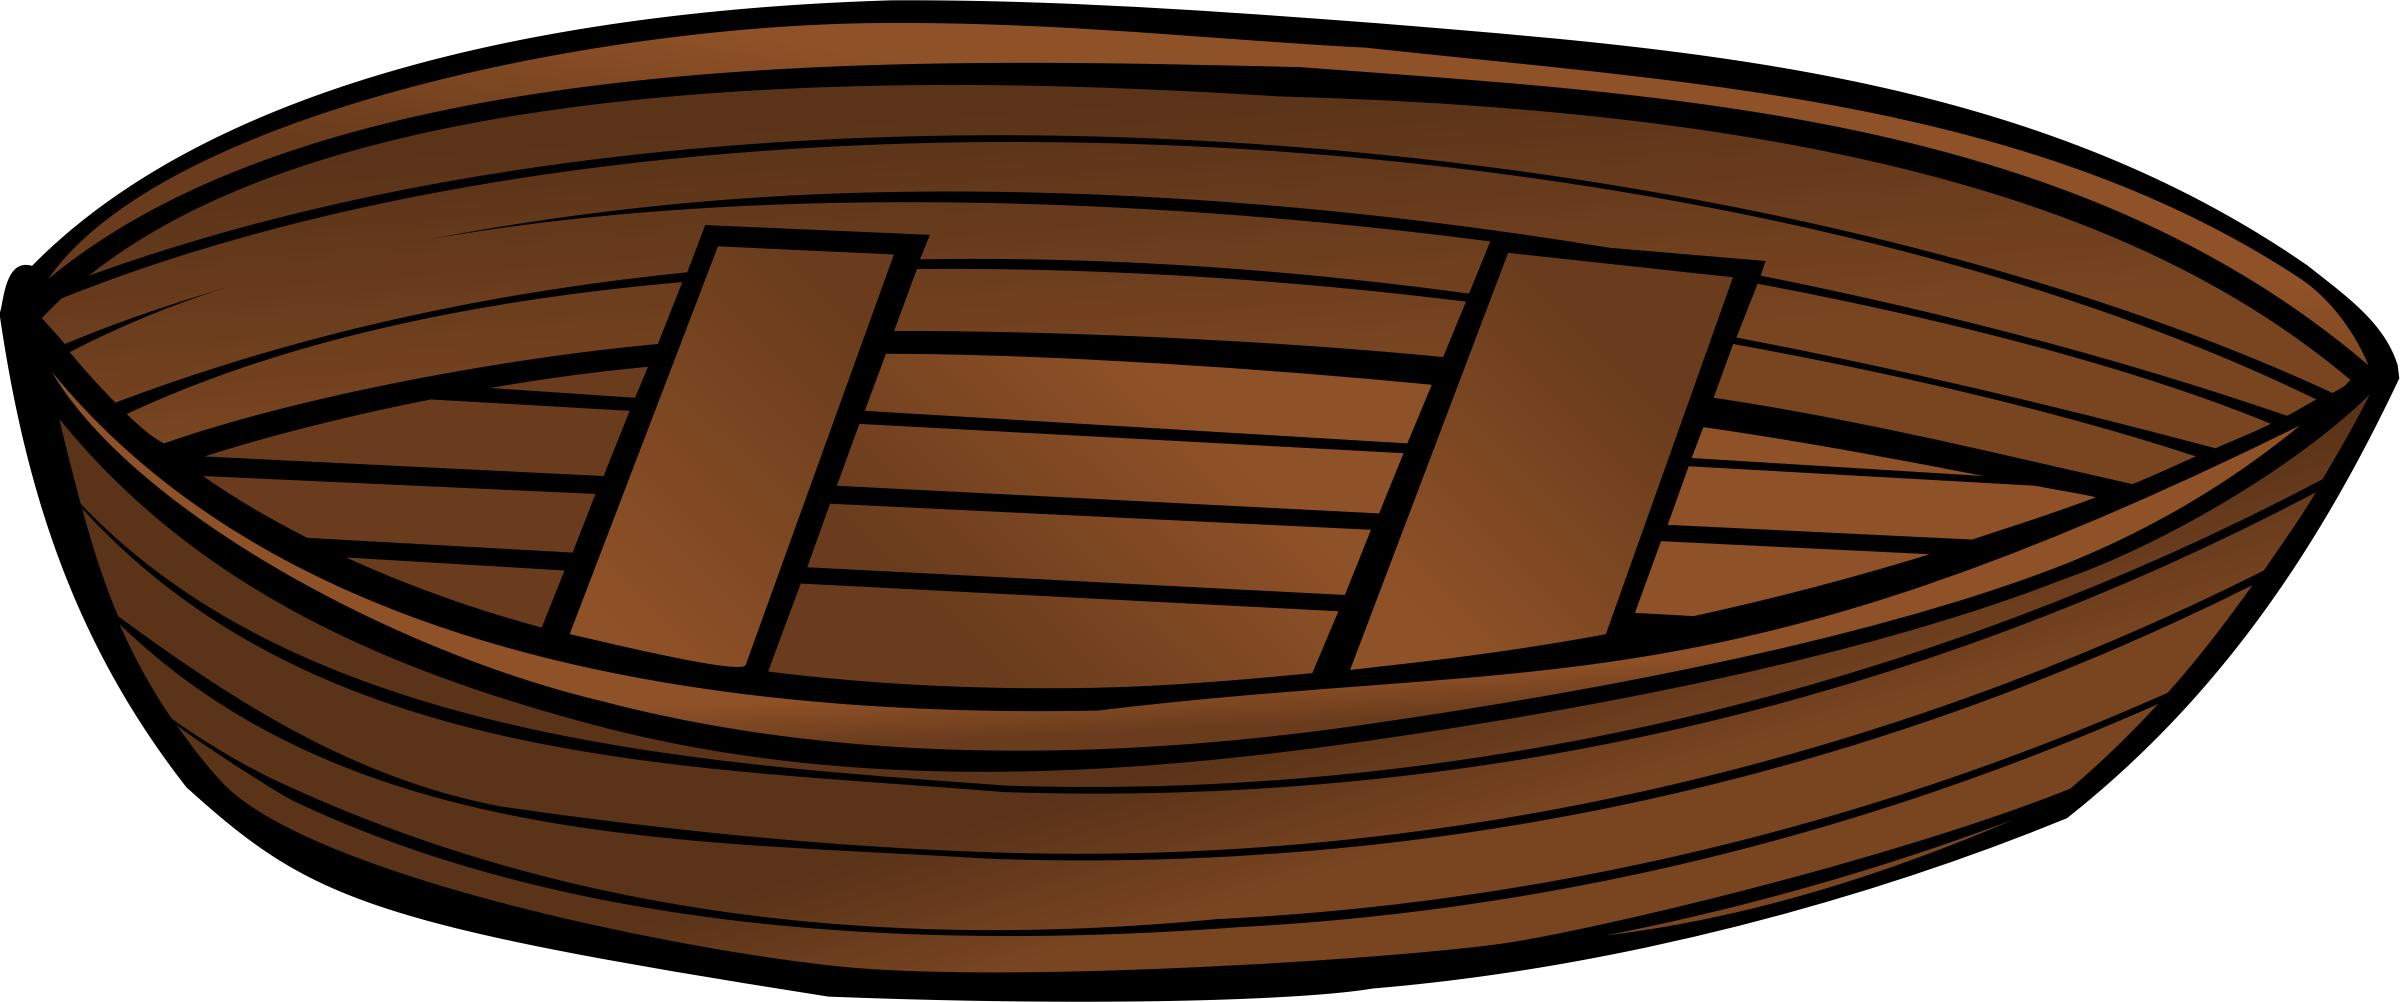 Sailboat clipart brown. Free boat icons png